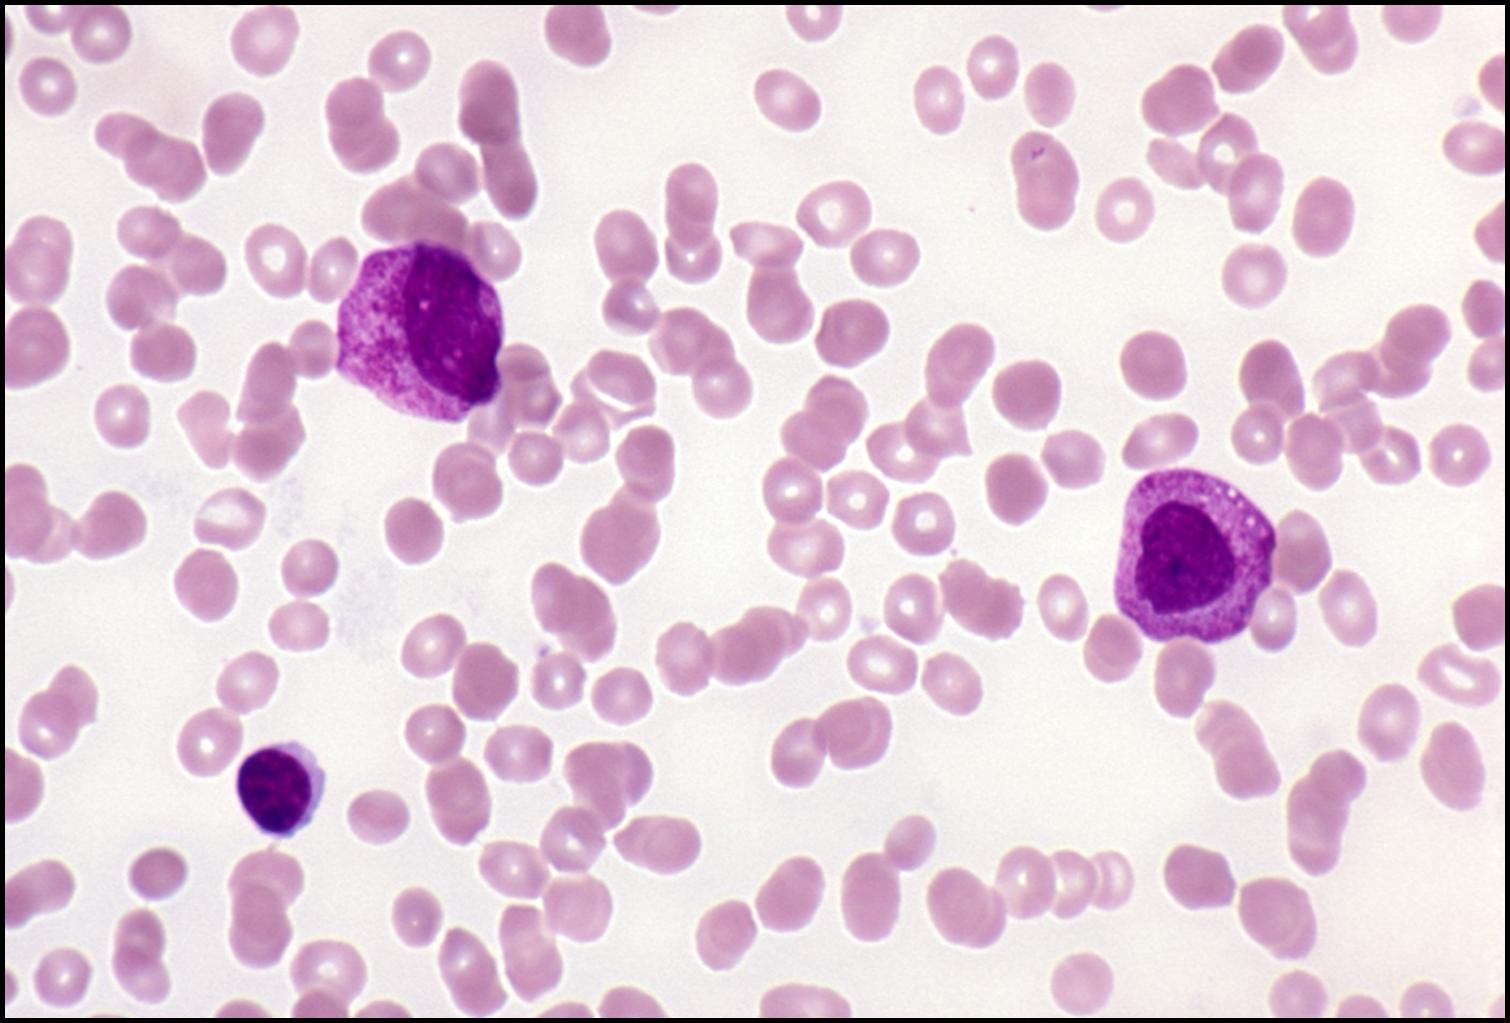 acute adult leukemia lymphocytic philadelphia